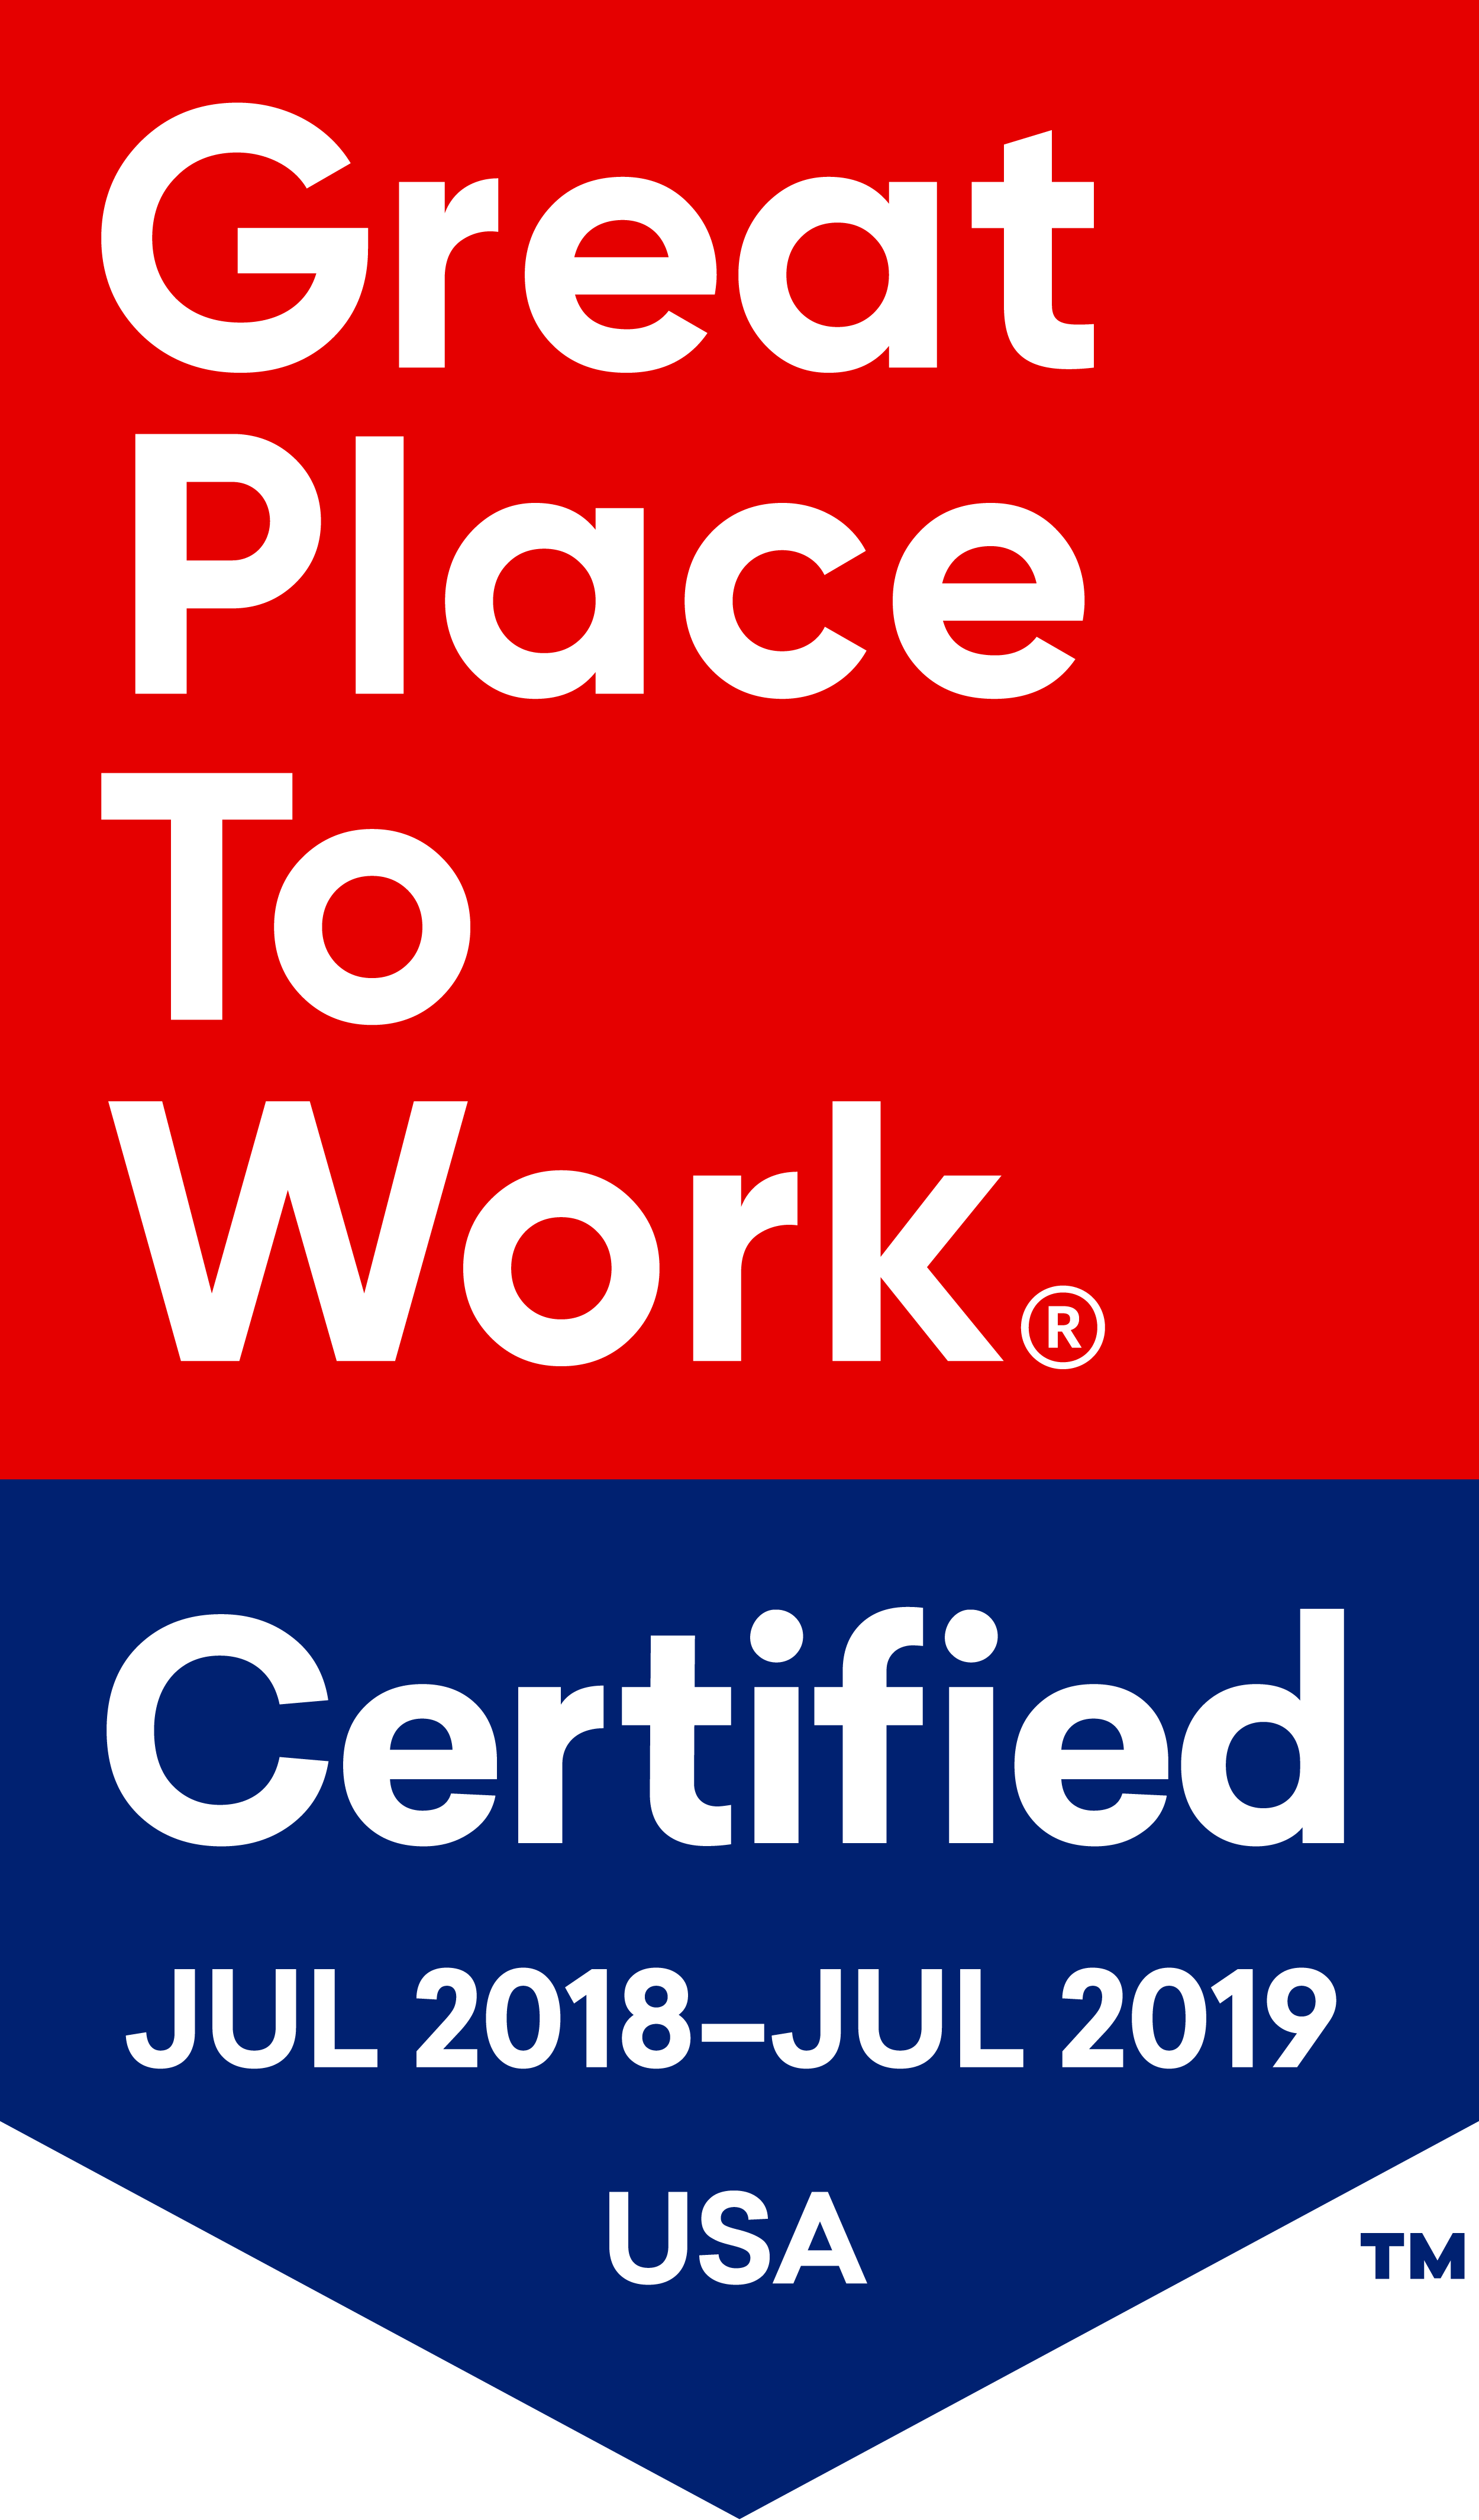 Great Place to Work Certified July 2018-July 2019